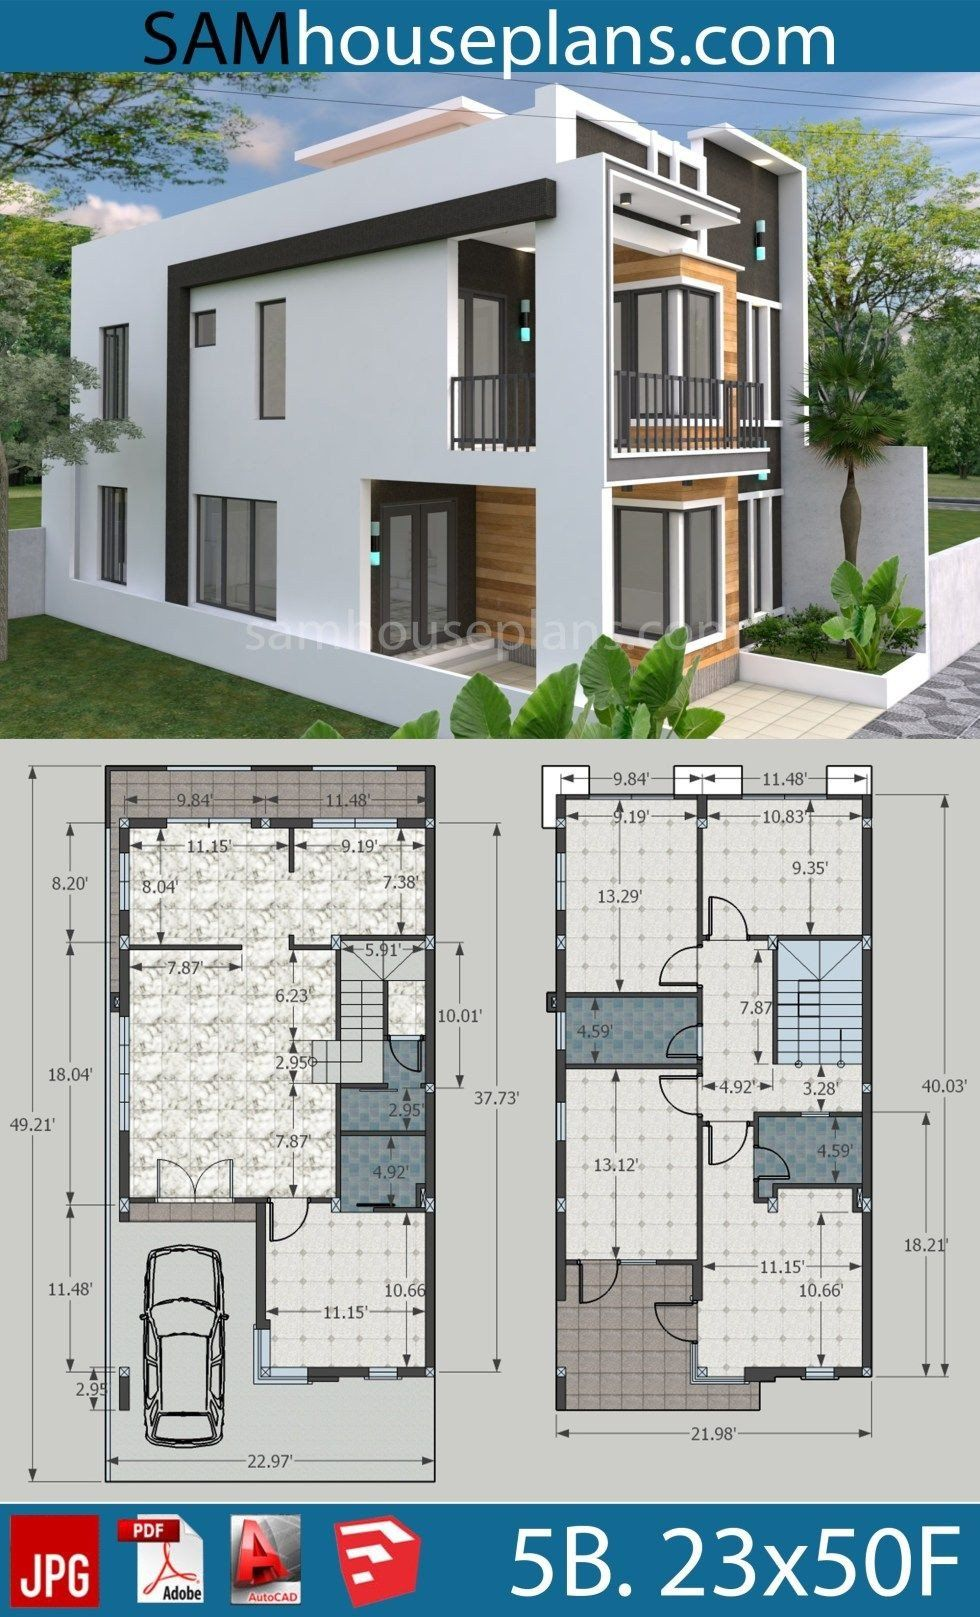 Beautiful Modern House Floor Plans House Plans 7x15m With 4 Bedrooms In 2020 Model House Plan Duplex House Design House Architecture Design